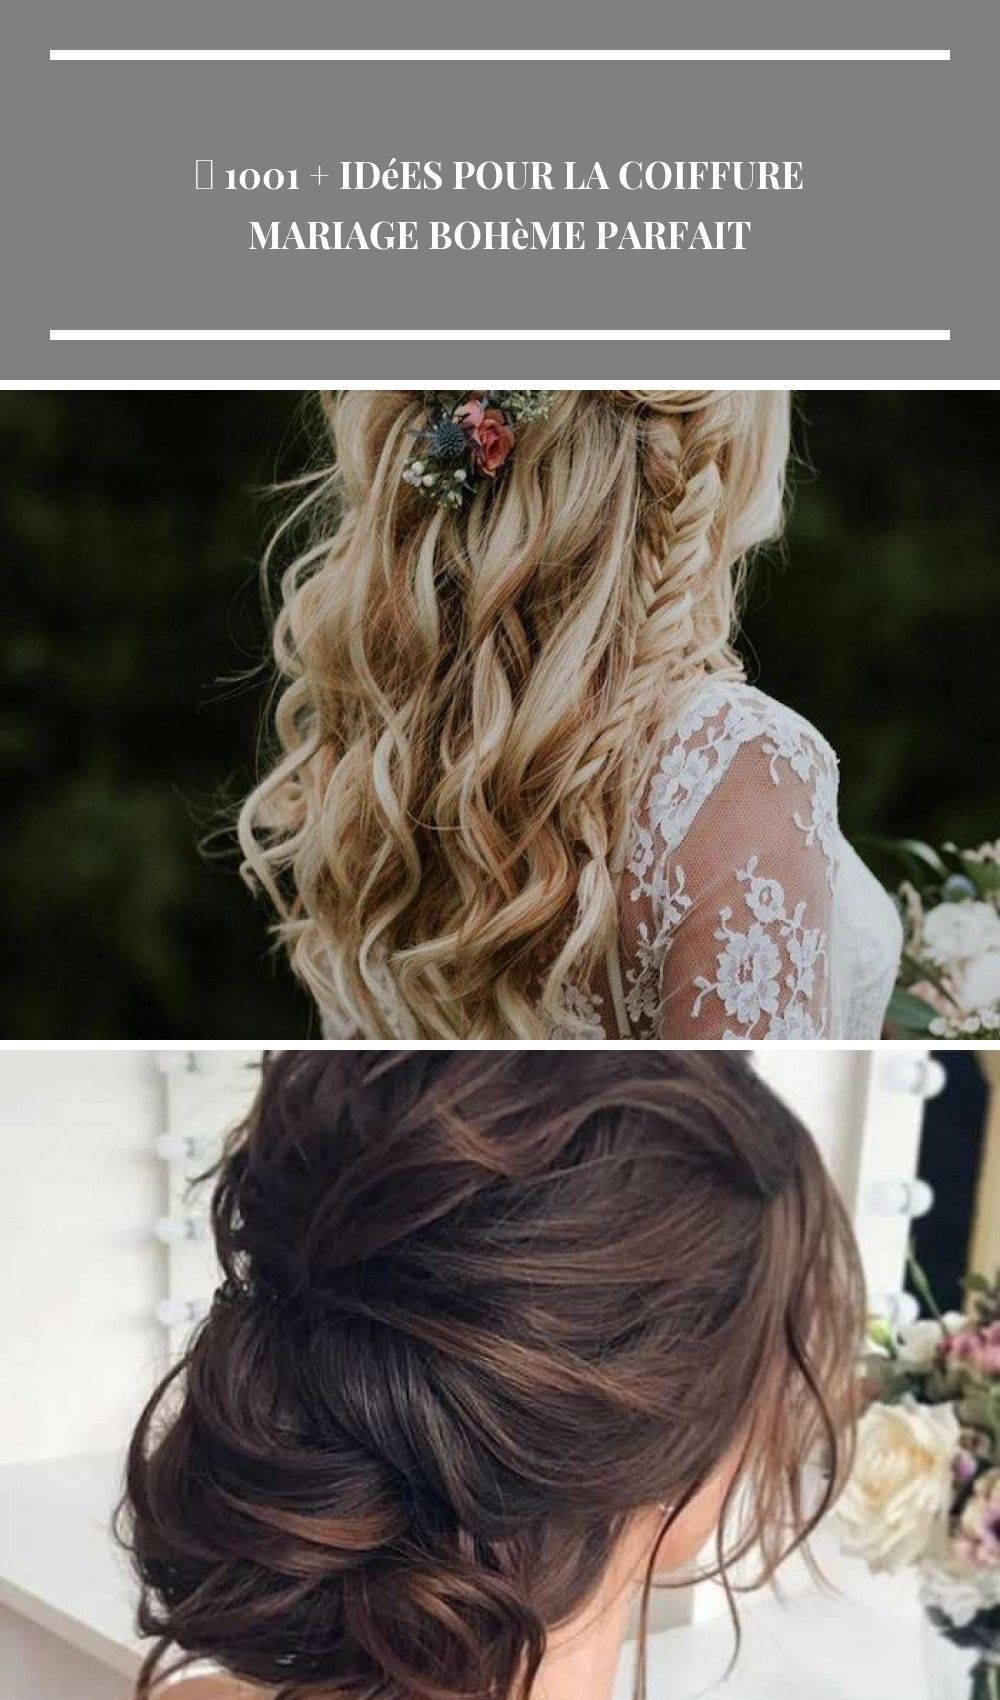 32+ Coiffure mariage champetre idees en 2021